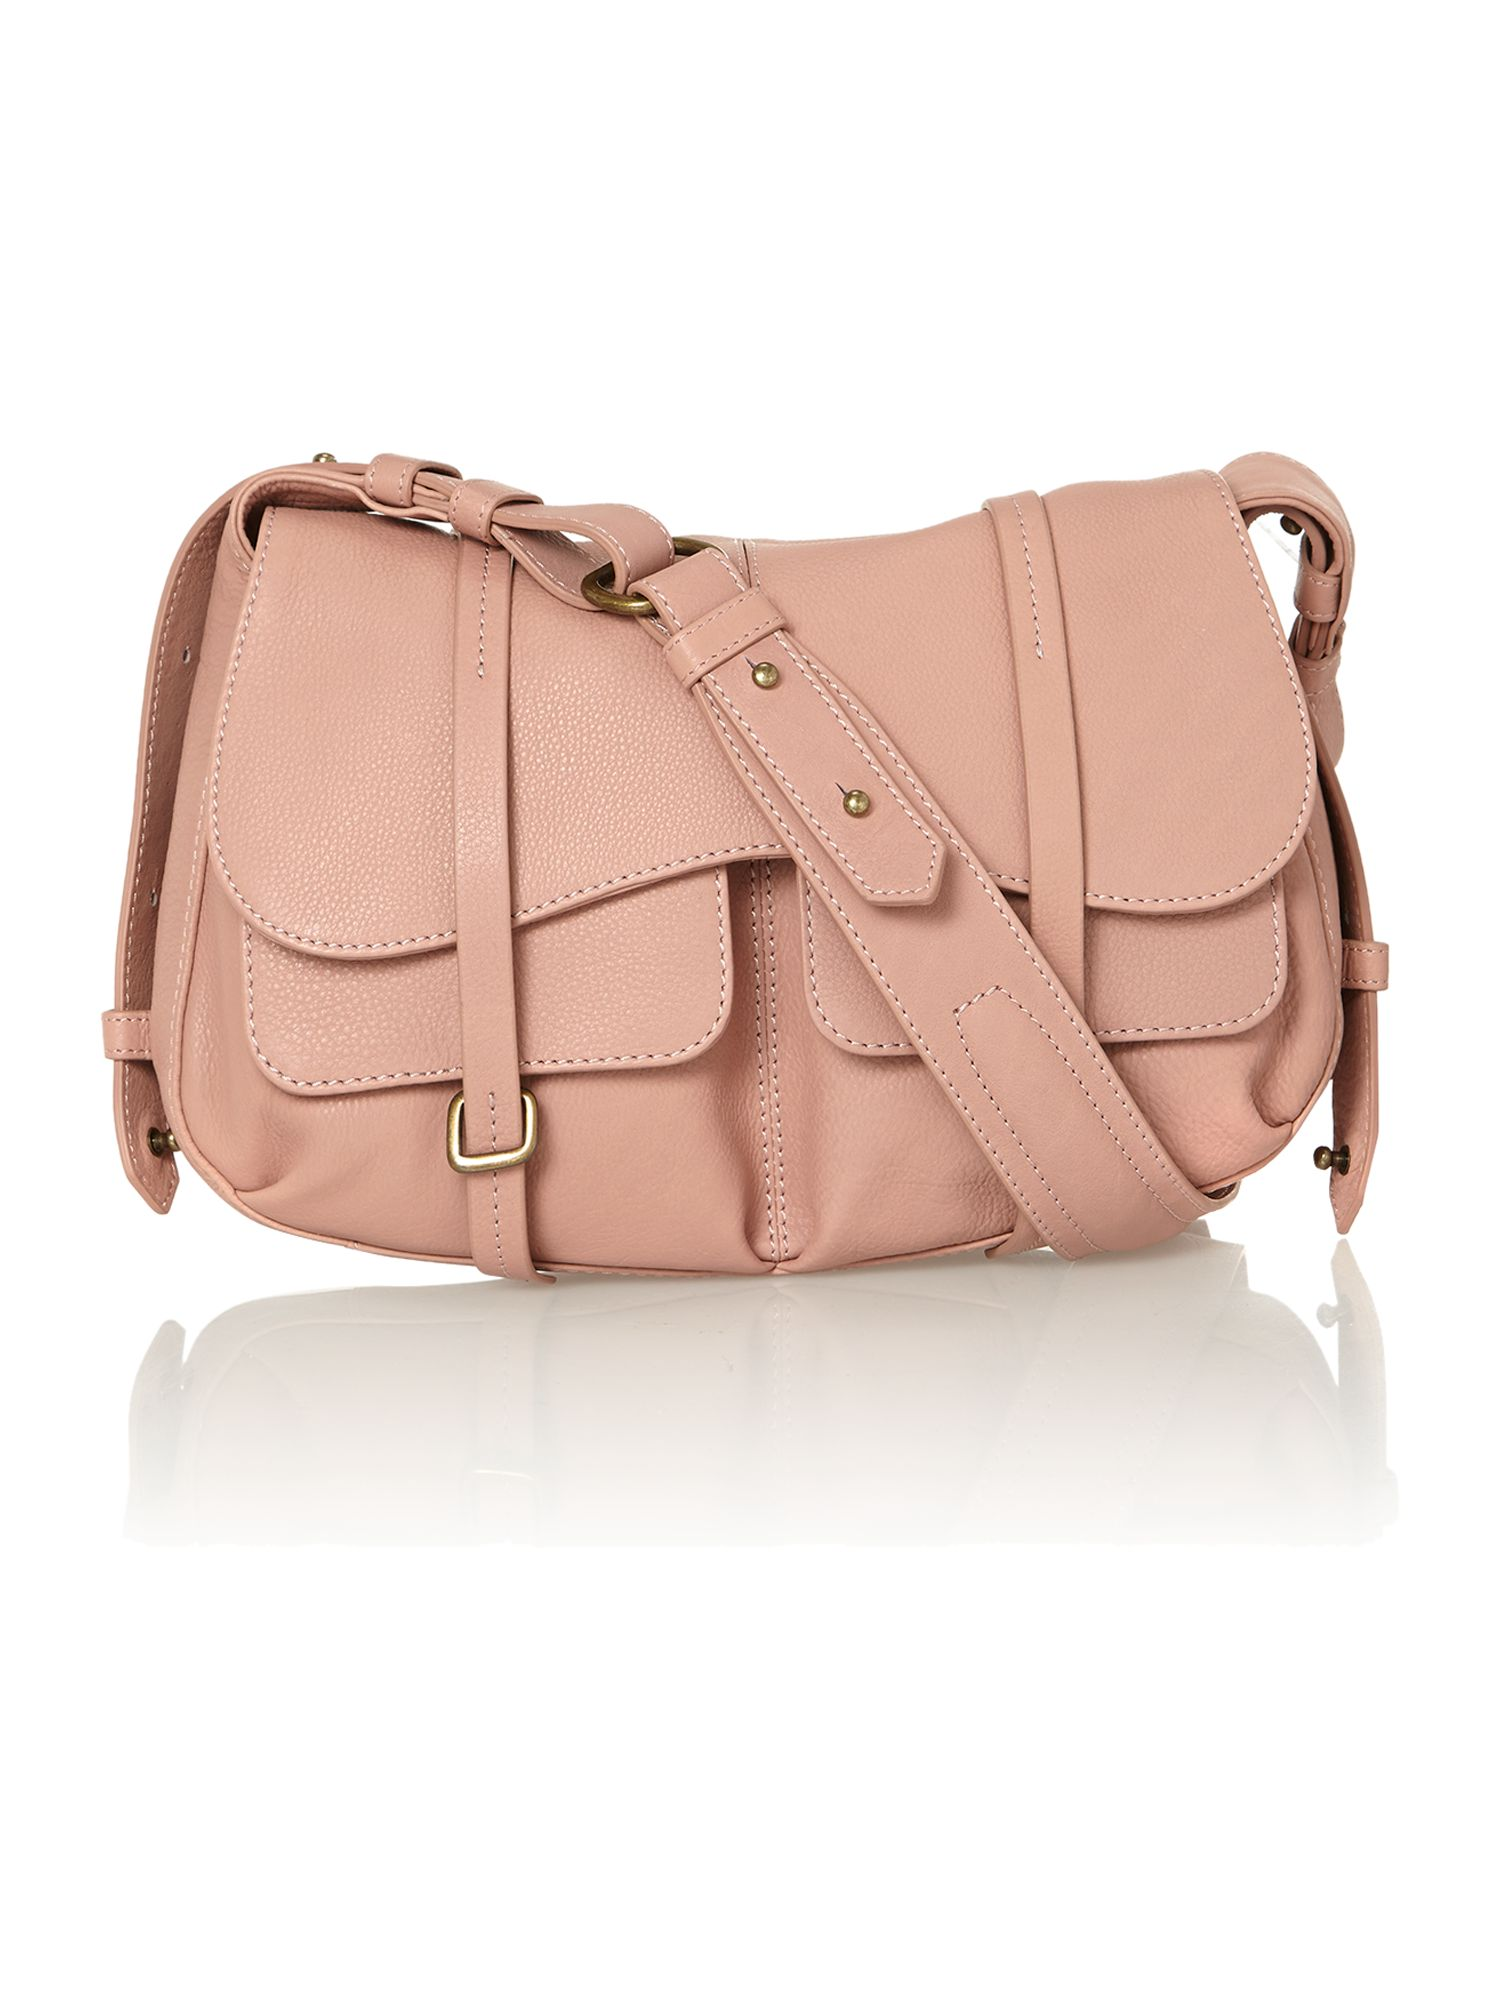 Pale pink medium flapover shoulder bag